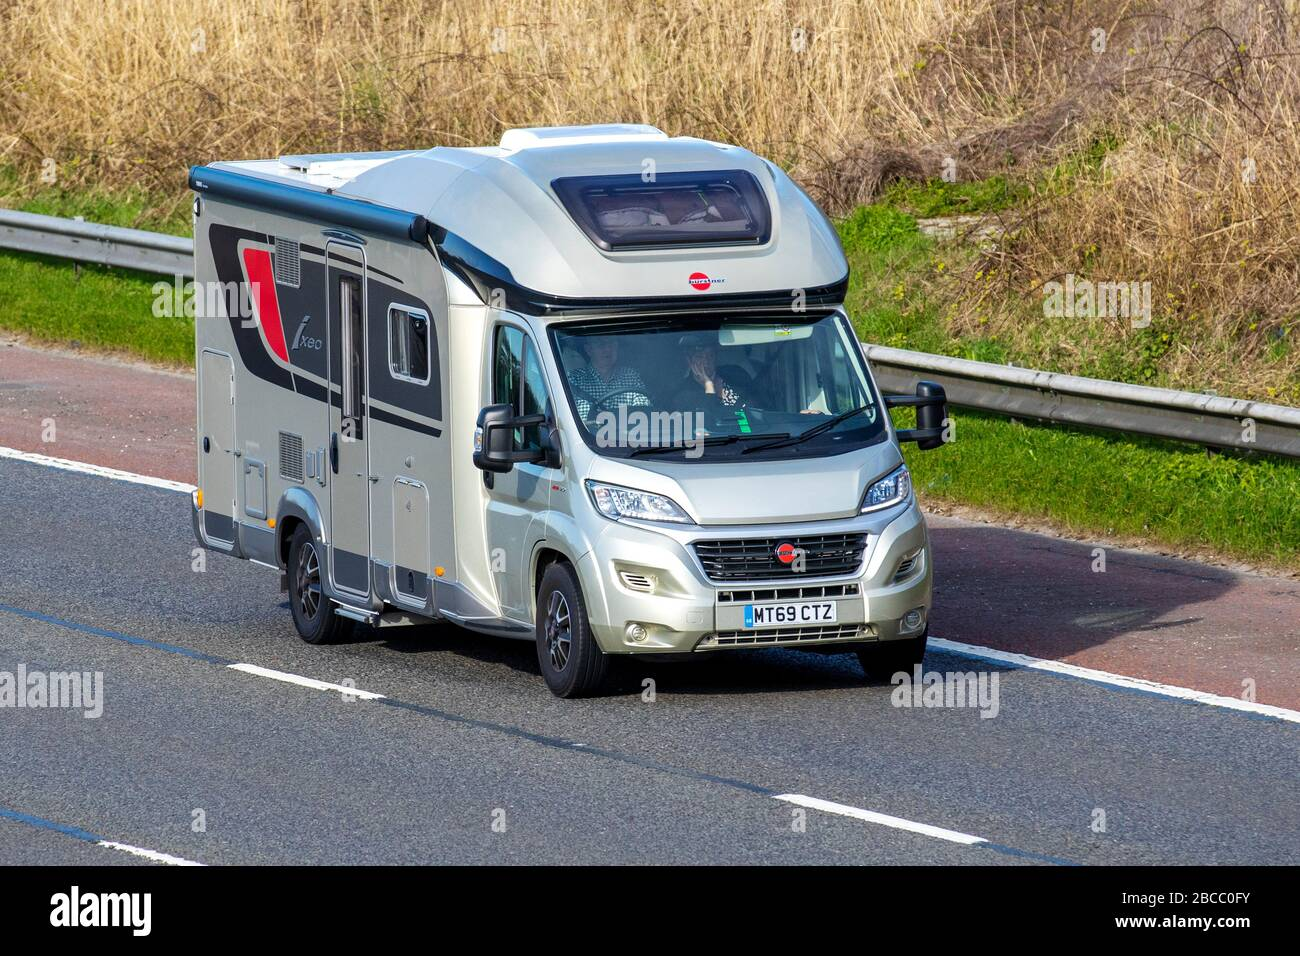 Fiat Ducato High Resolution Stock Photography And Images Alamy